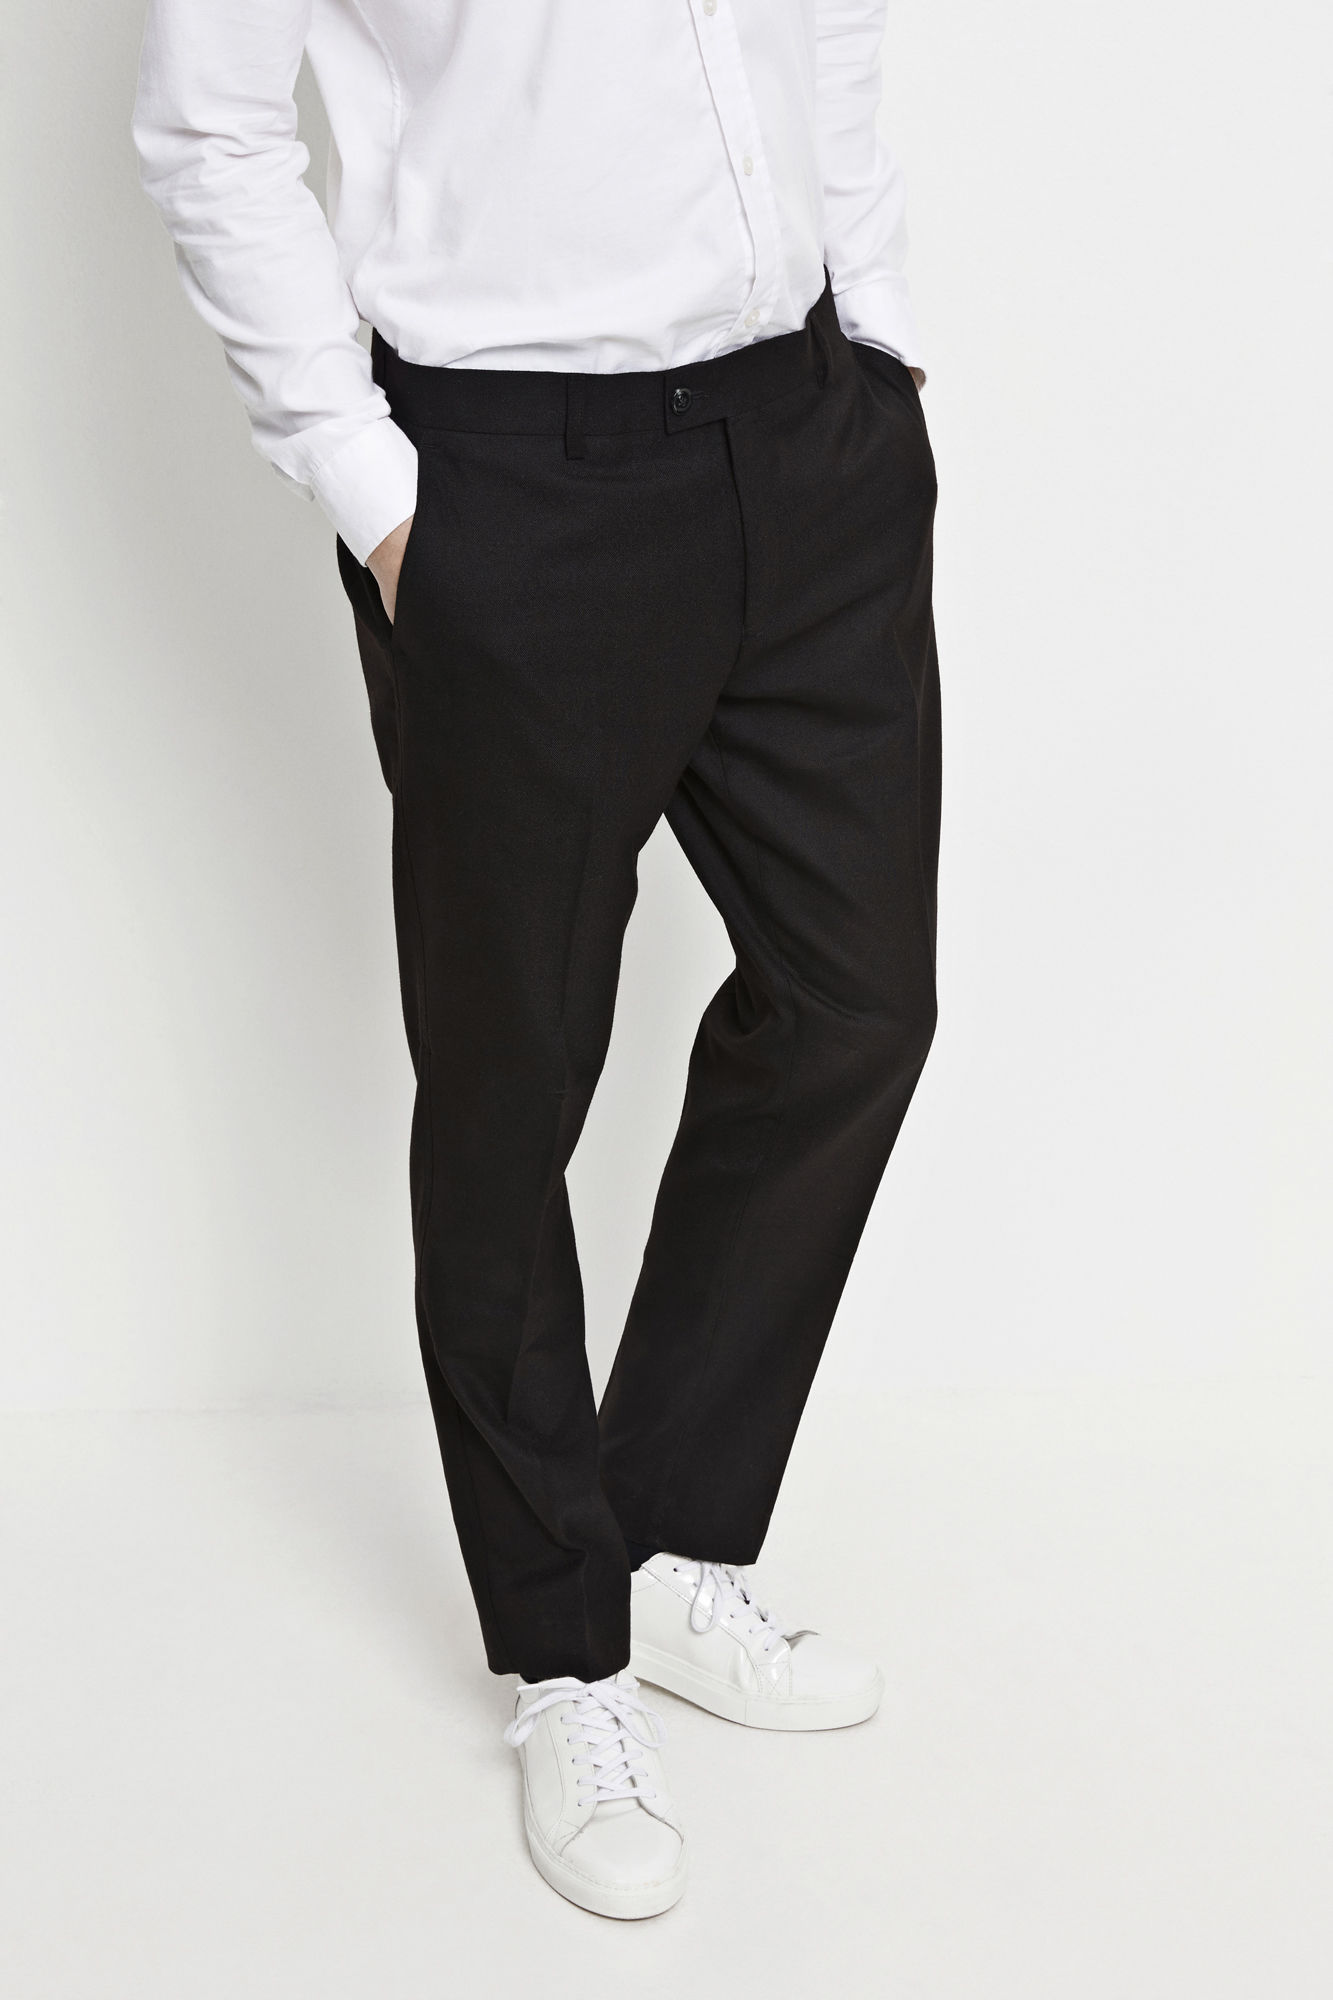 Samsoe Laurent Wool Pants Men's Winter Fashion